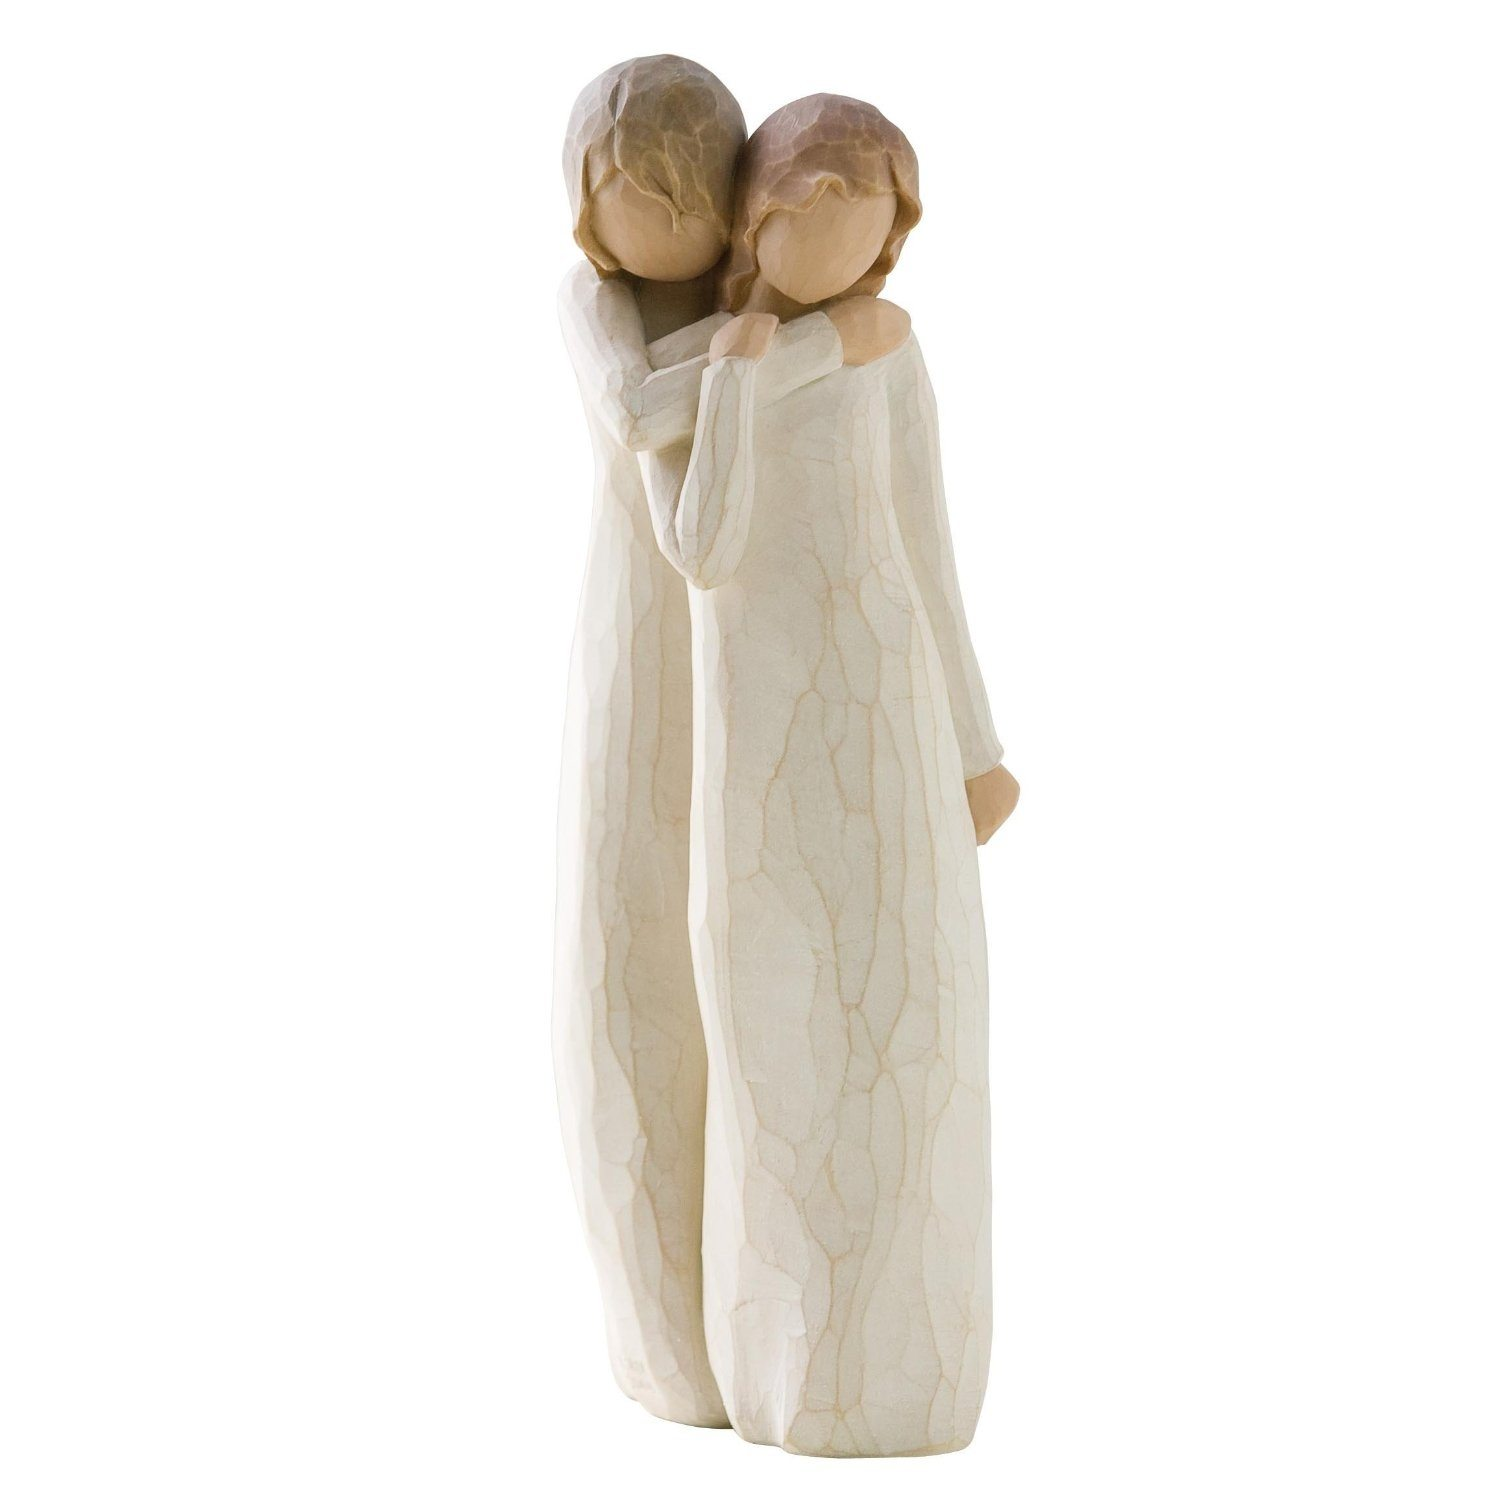 87fb570faaa Unique Same-Sex Cake Toppers